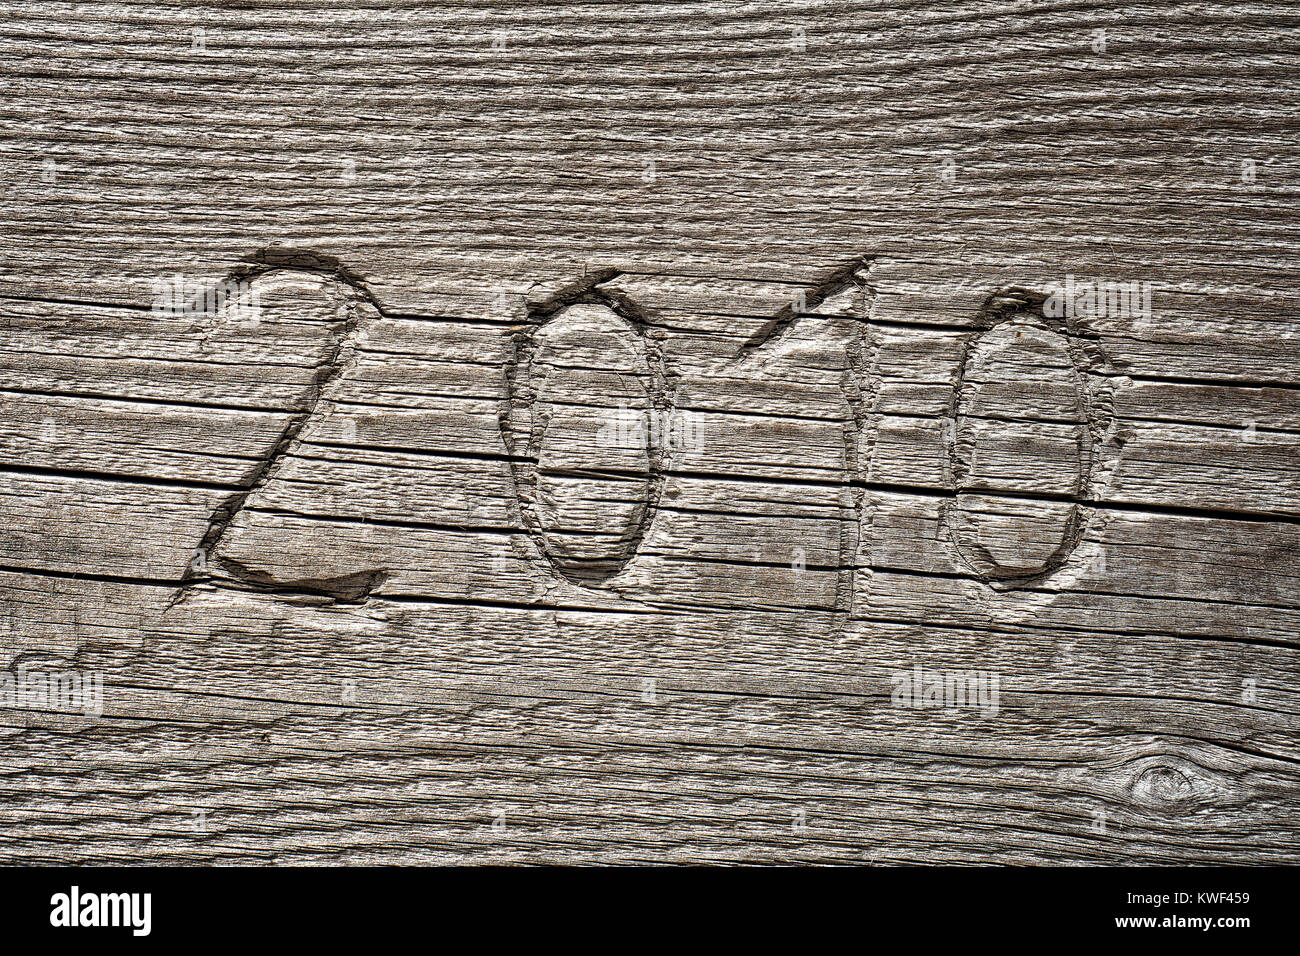 year number 2010 carved into wood stock image